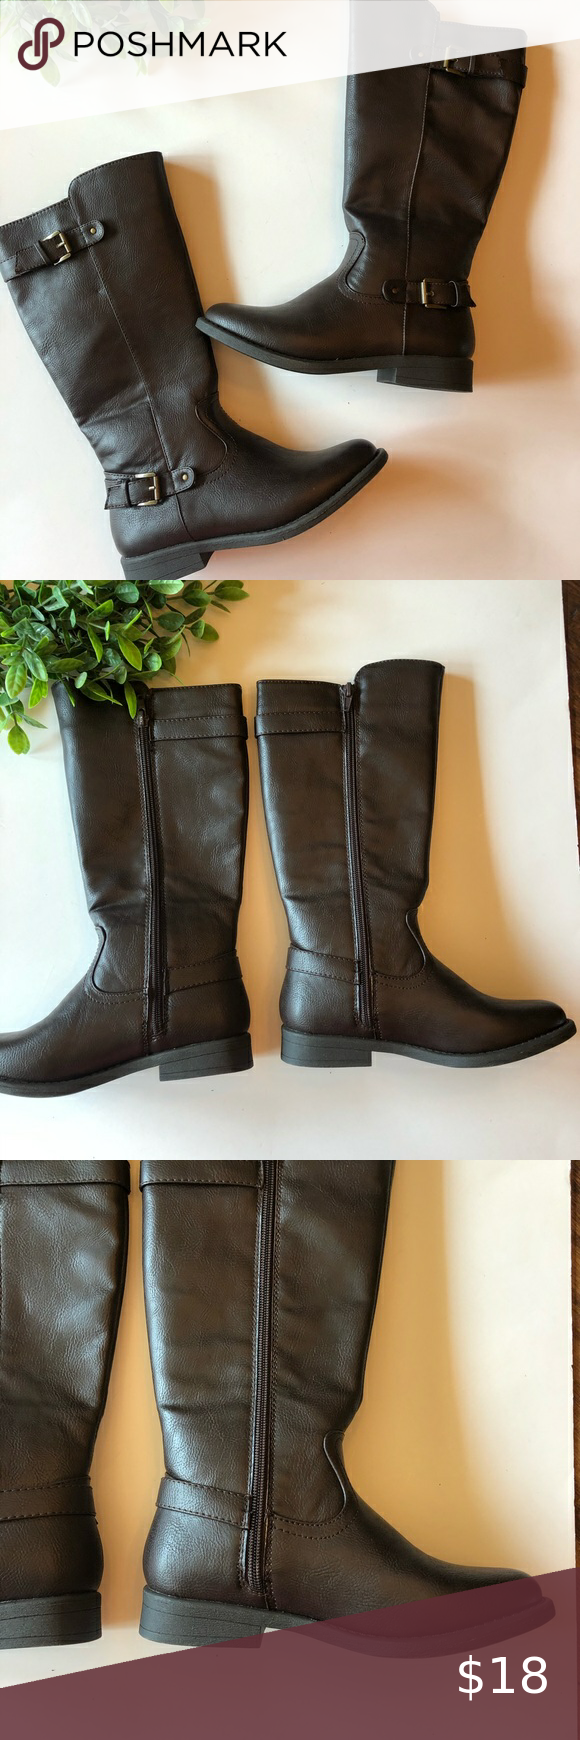 H🤩ST PICK, [NWOT 143] GIRL DARK BROWN BOOTS